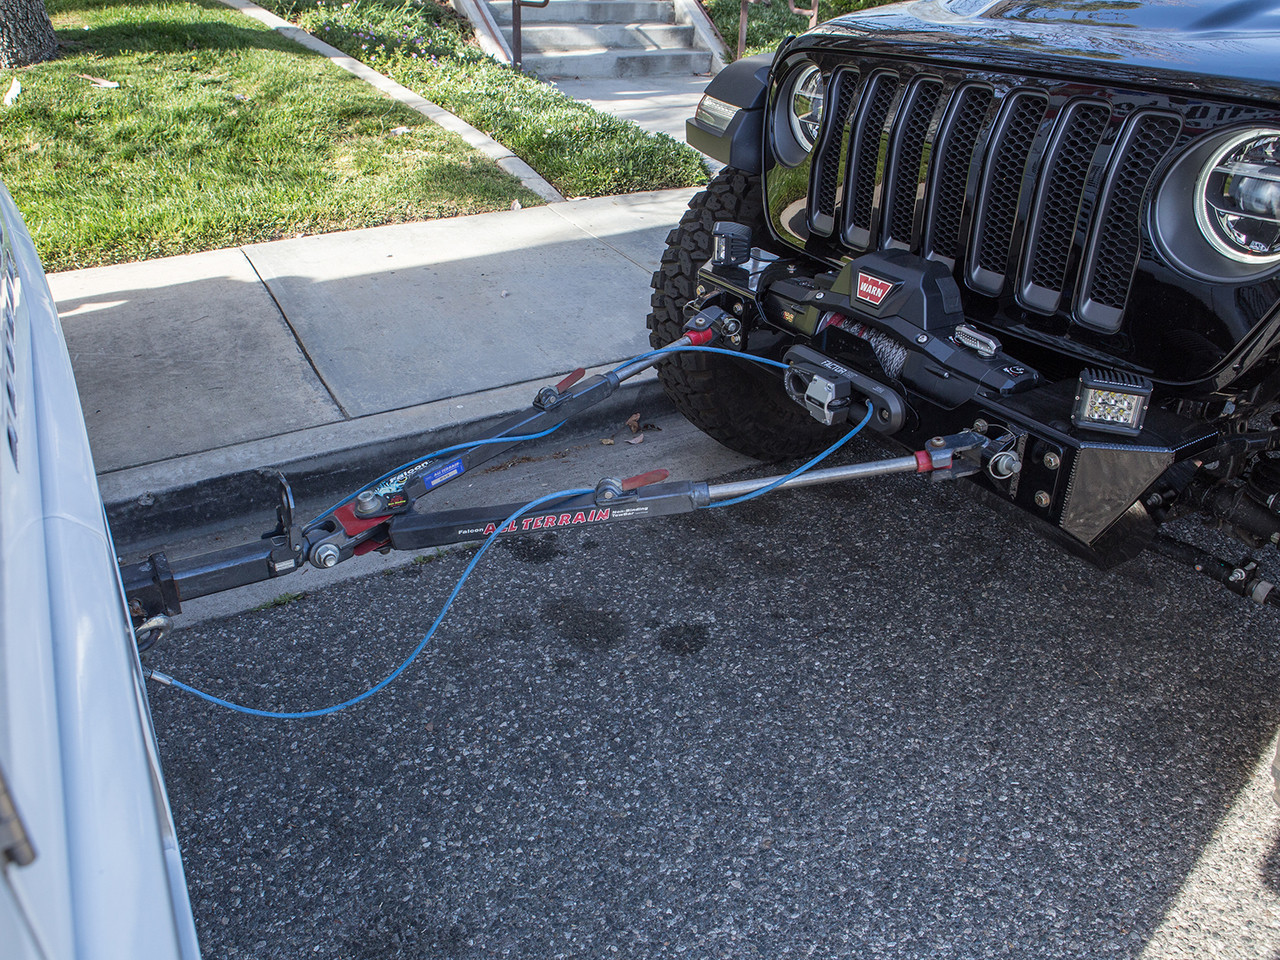 Flat Tow Compatible thanks to the heavy duty tow points.